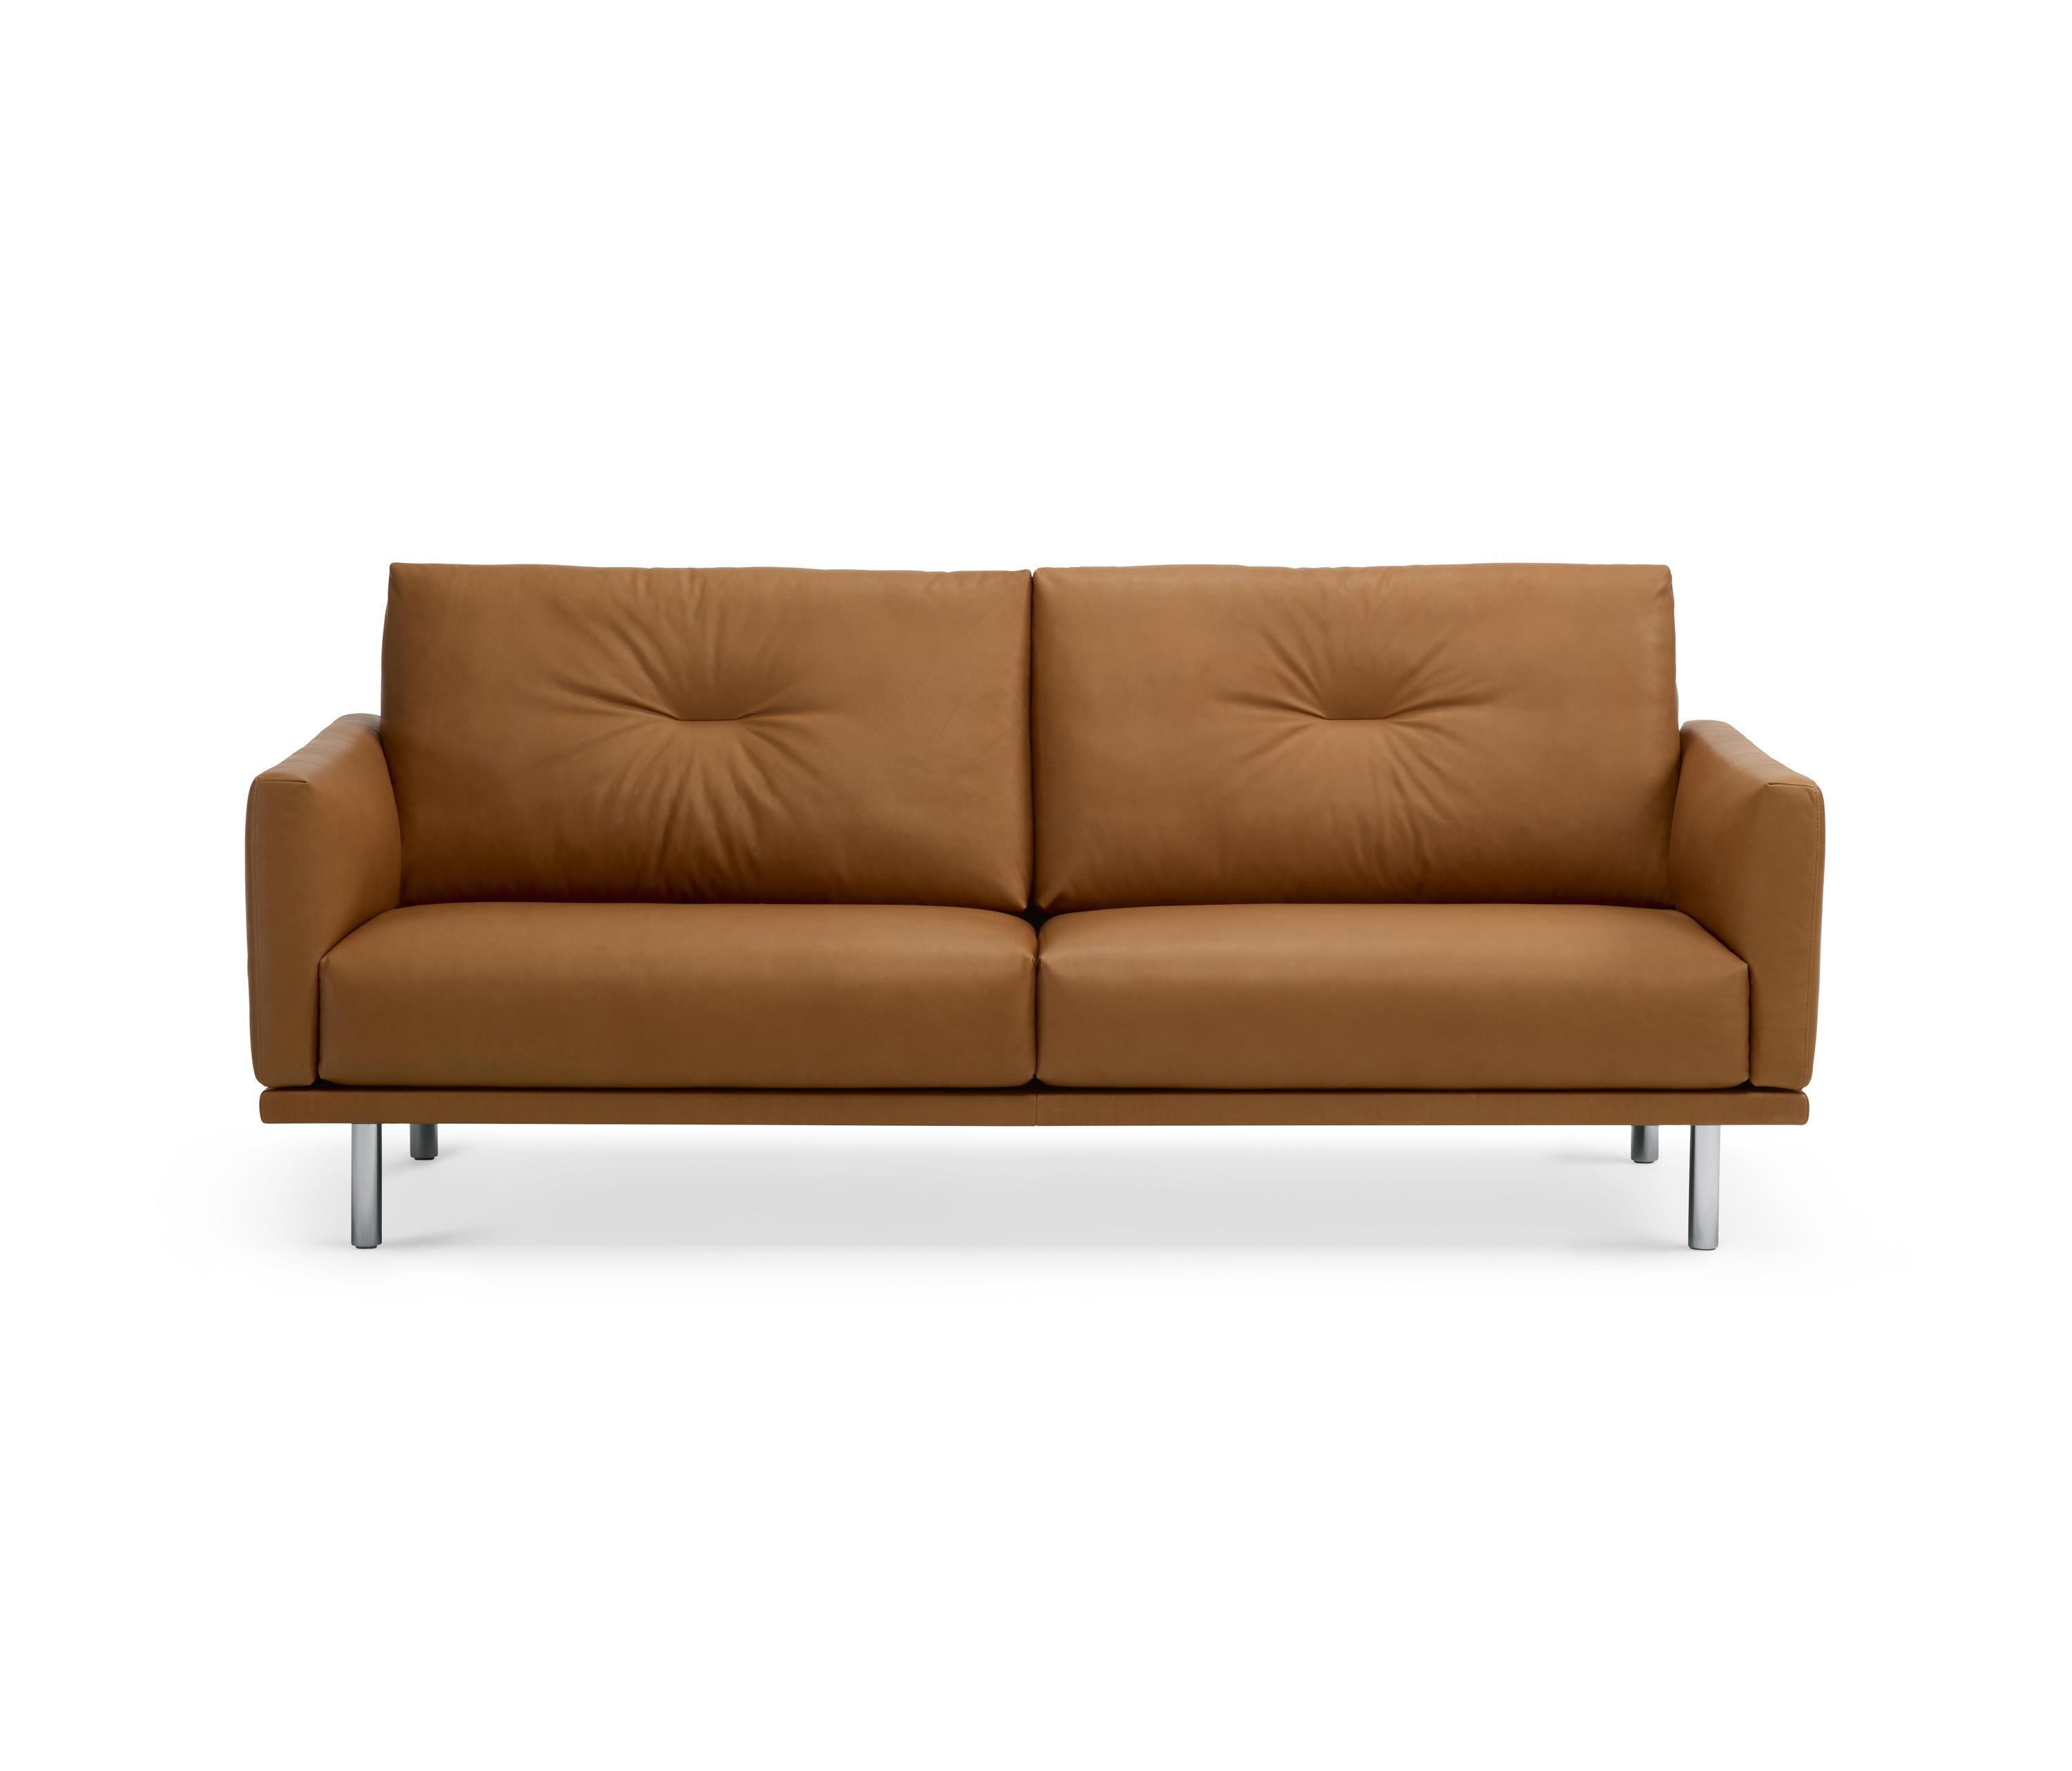 3er Sofa 1630 Mellow Sofas From Intertime Architonic